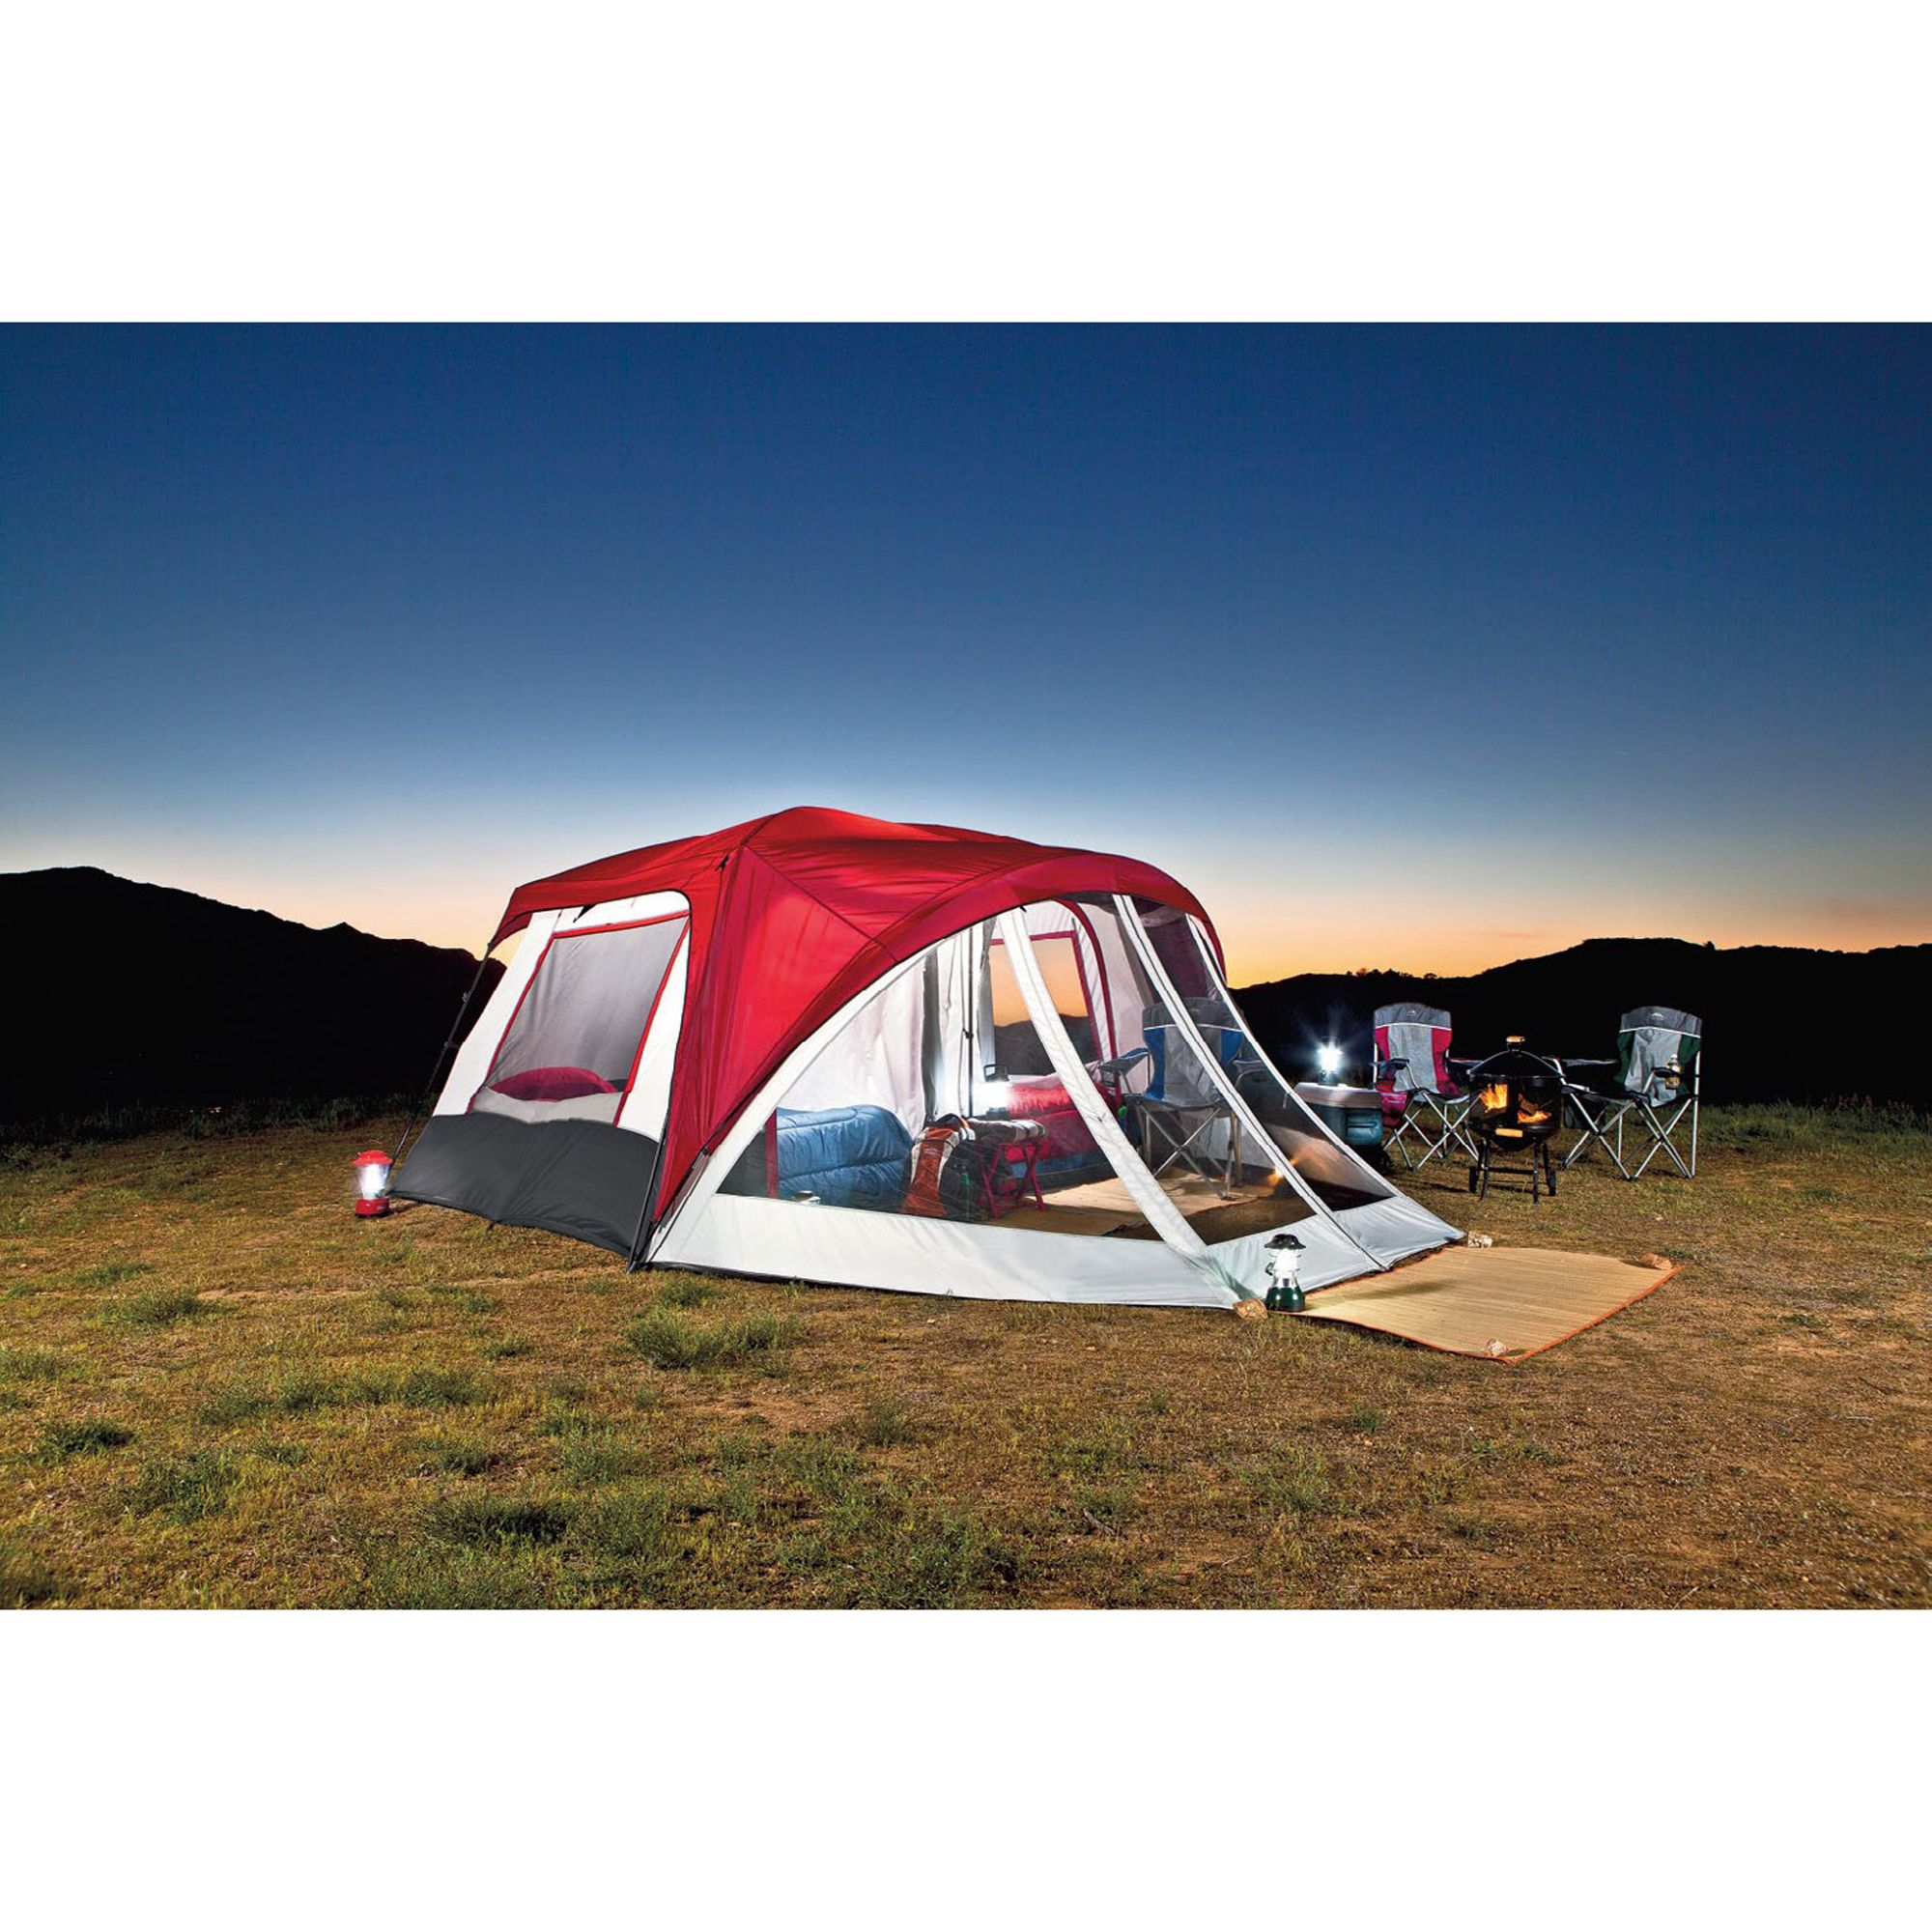 Northwest Territory Regal Creek Tent - Fitness & Sports Outdoor Activities Camping Hiking